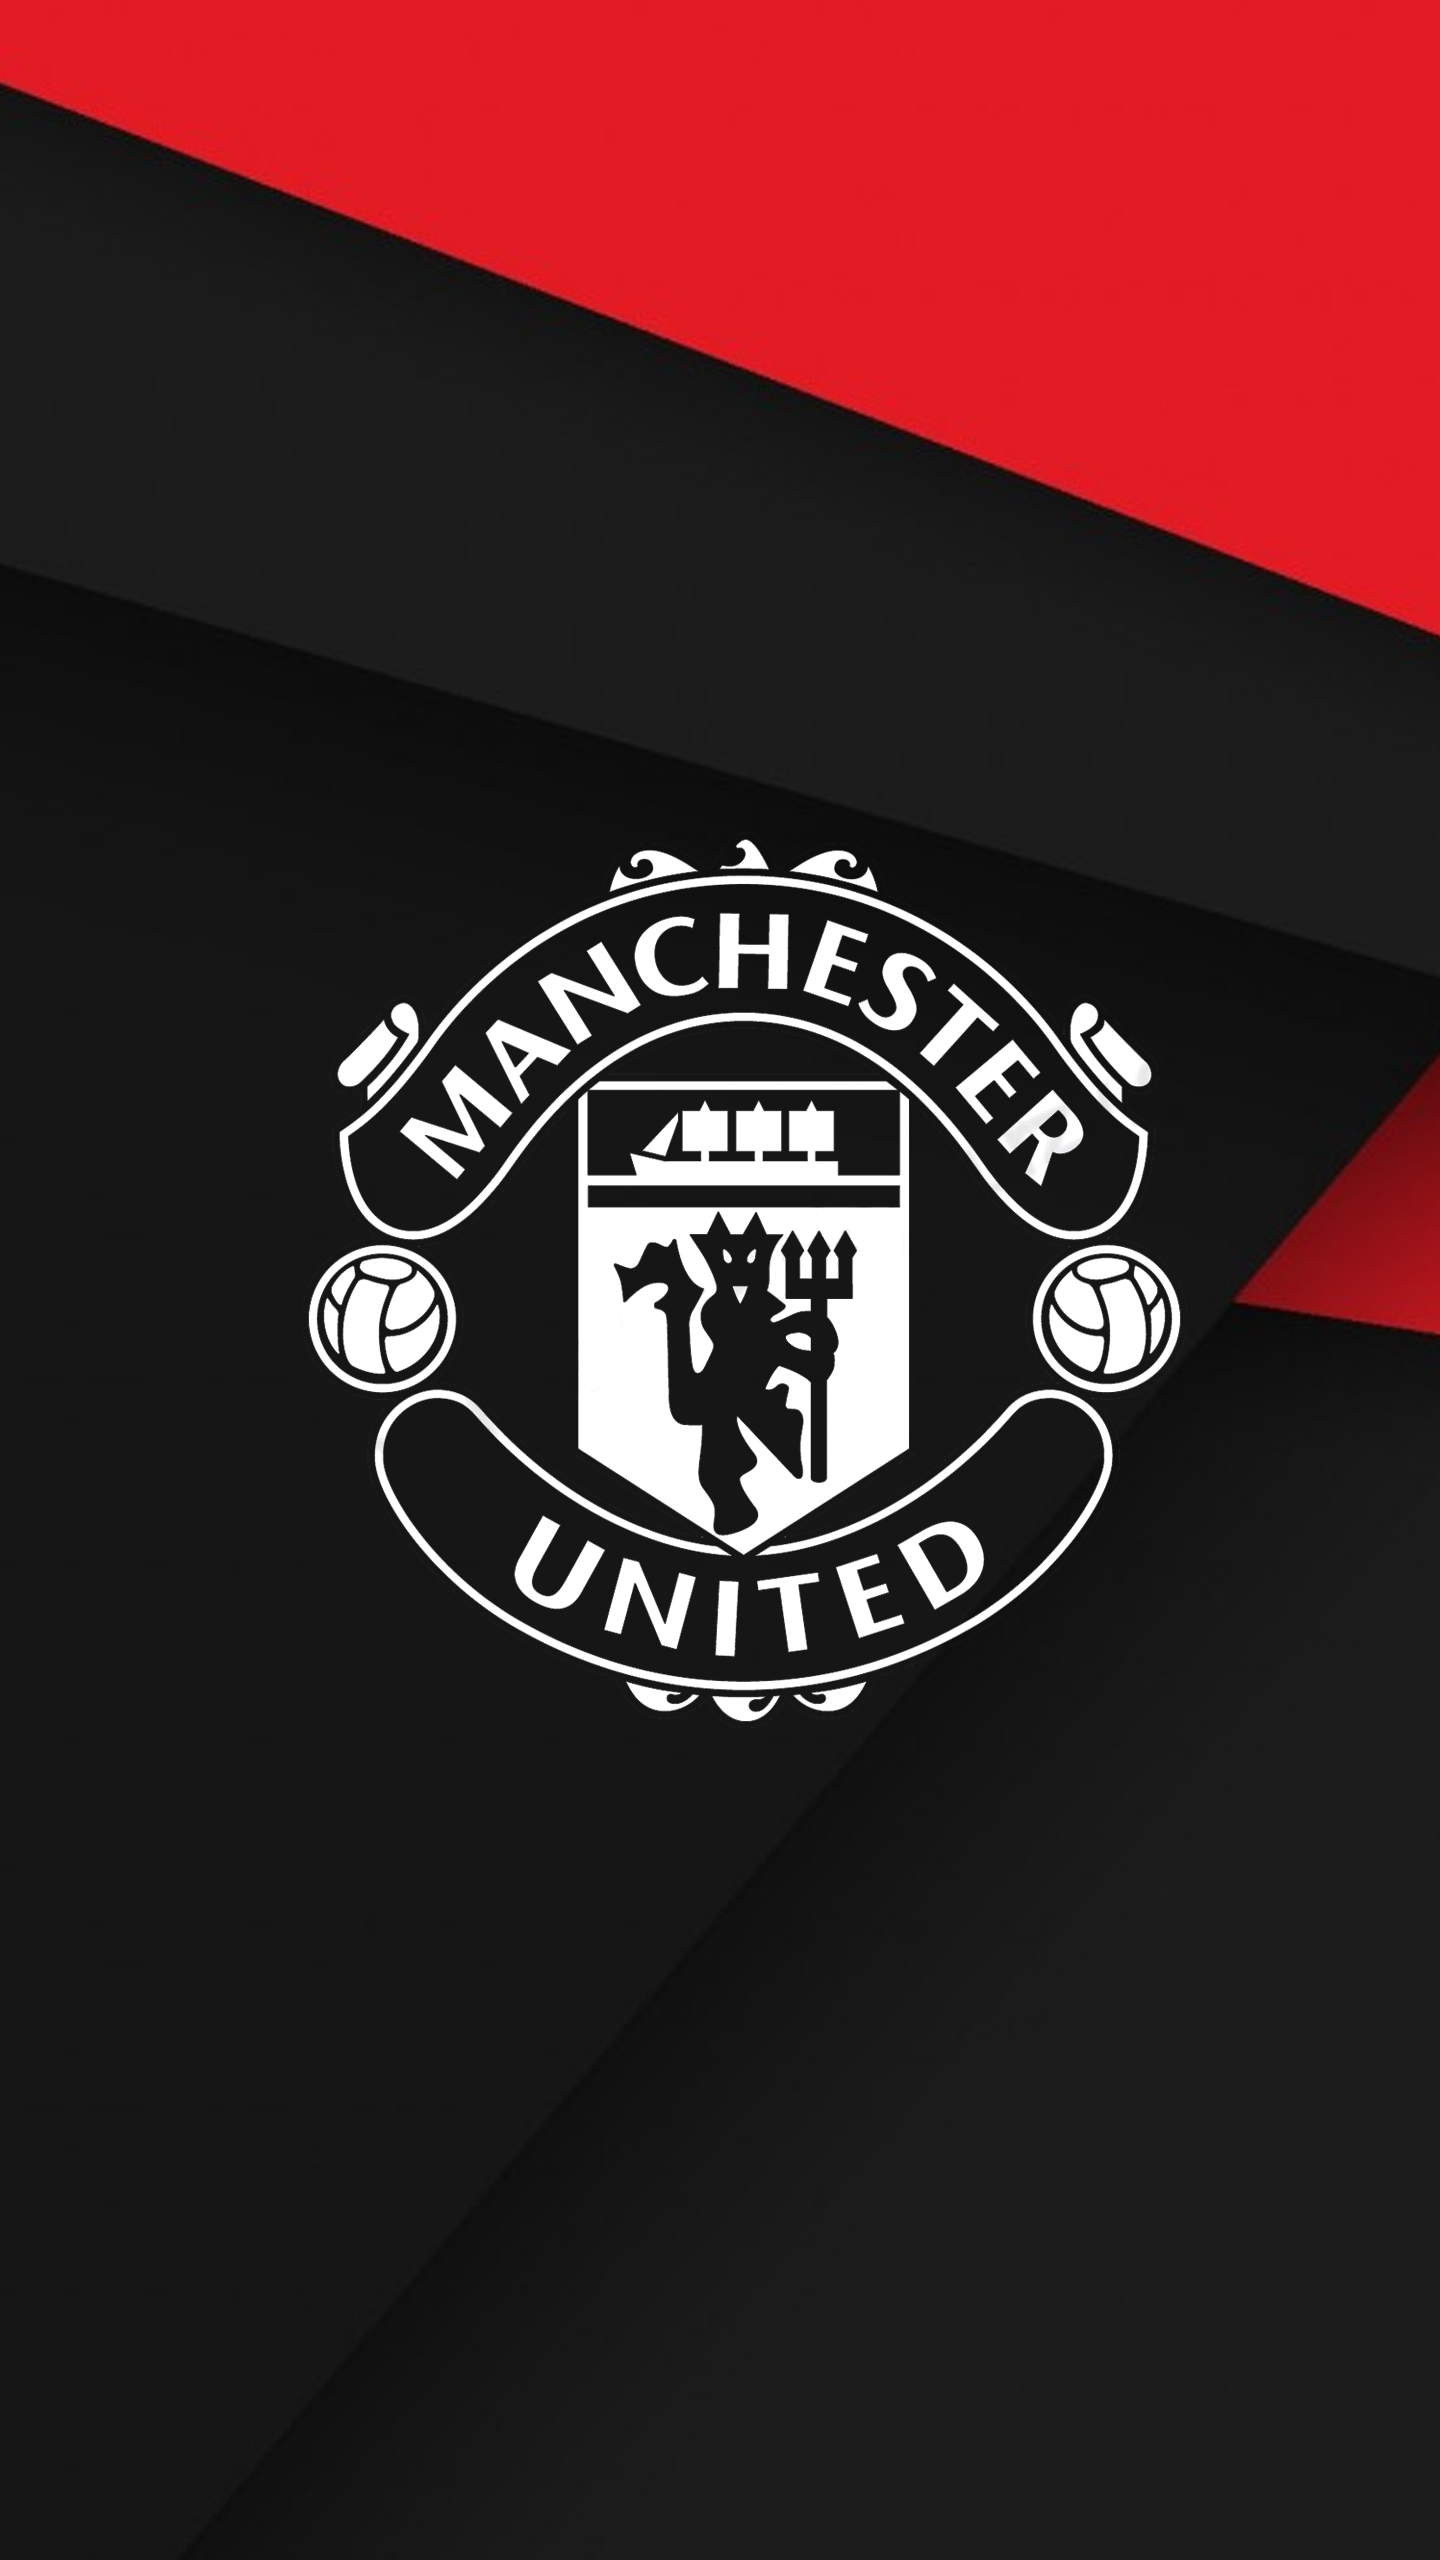 Manchester United Phone Wallpapers Bola Kaki Sepak Bola Olahraga